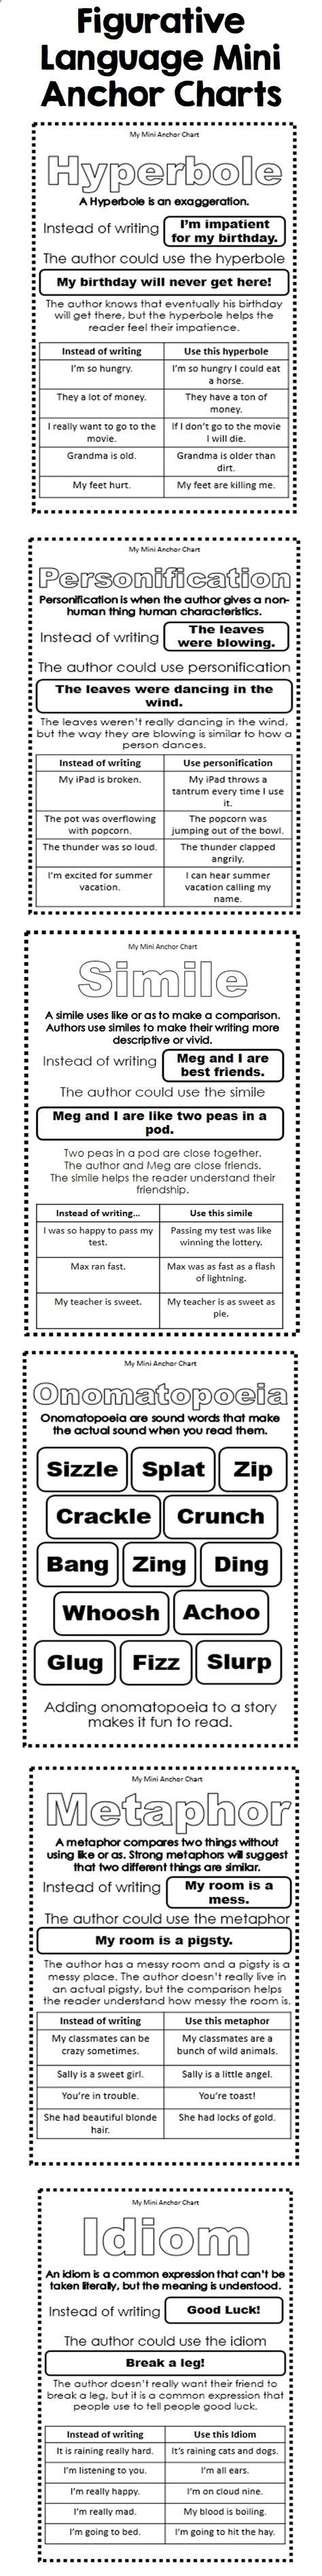 Teach Your Child to Read These mini anchor charts are a great addition to an interactive reading or writing notebook. Product includes Mini Anchor Charts for Similes, Metaphors, Personification, Hyperbole, Idioms, and Onomatopoeia. Mini Anchor chart includes a definition, example, and explanation of how to use it in your writing. Give Your Child a Head Start, and...Pave the Way for a Bright, Successful Future...